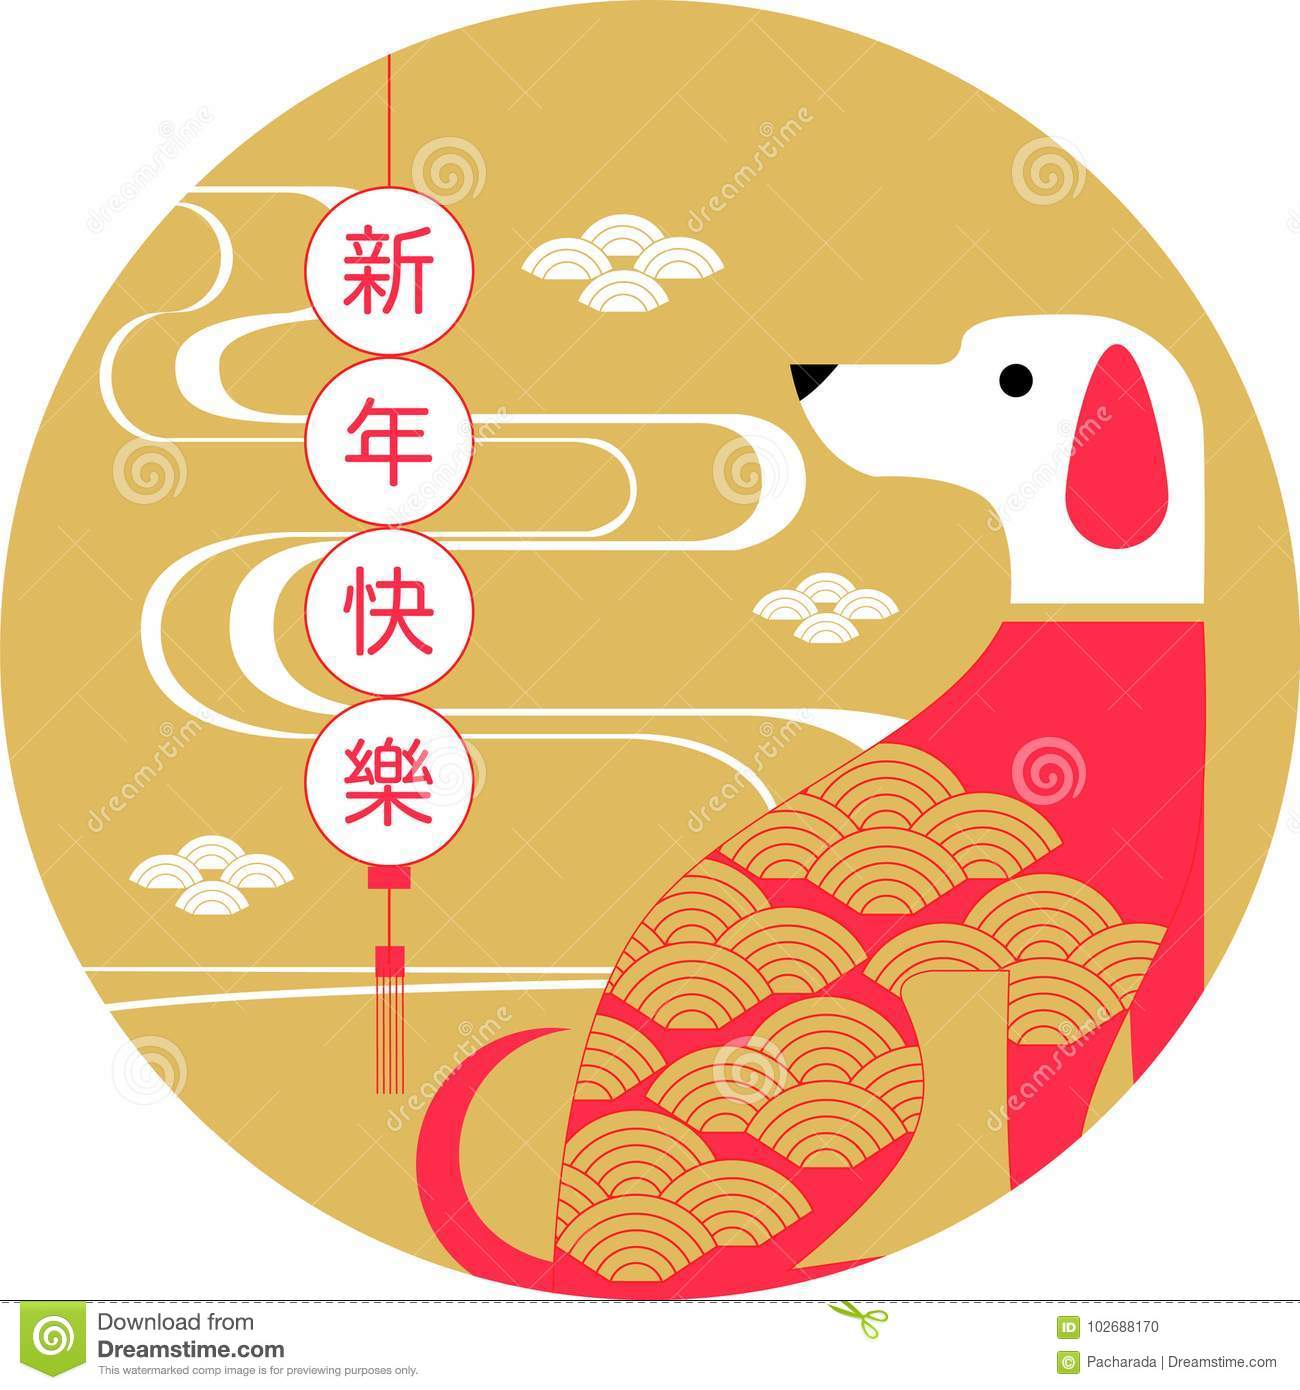 Happy new year 2018 chinese new year greetings stock vector download happy new year 2018 chinese new year greetings stock vector illustration m4hsunfo